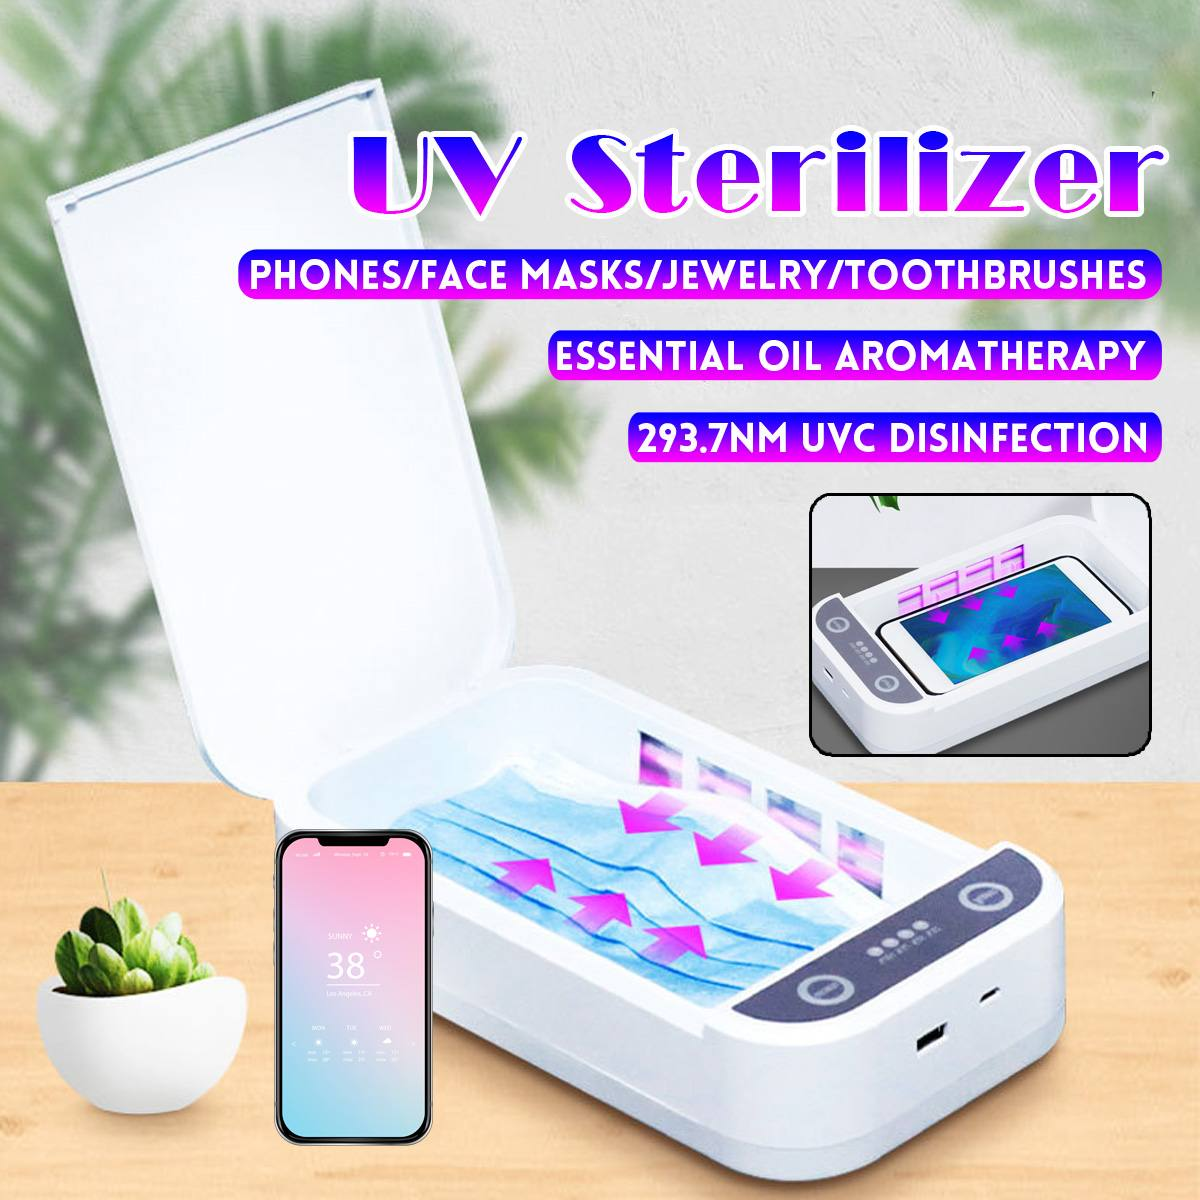 Phone UV Sterilization Phone Sterilizer Machine Wash Machine With USB/Wireless Inductive Charge Touch Control Camp First Aid Kit